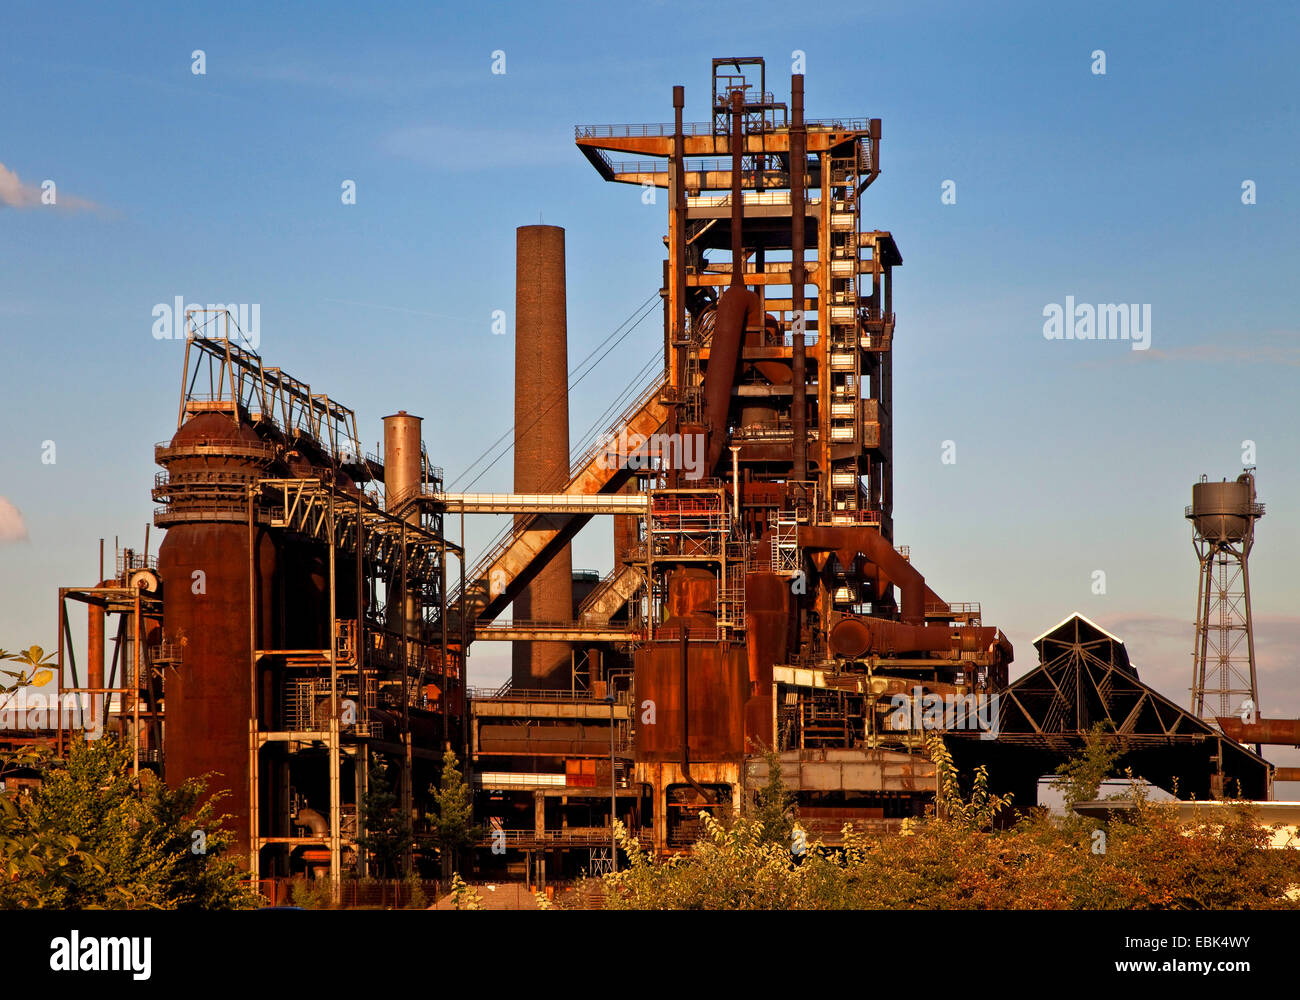 Blast Furnace Construction : Blast furnace of the abandoned steel mill phoenix west